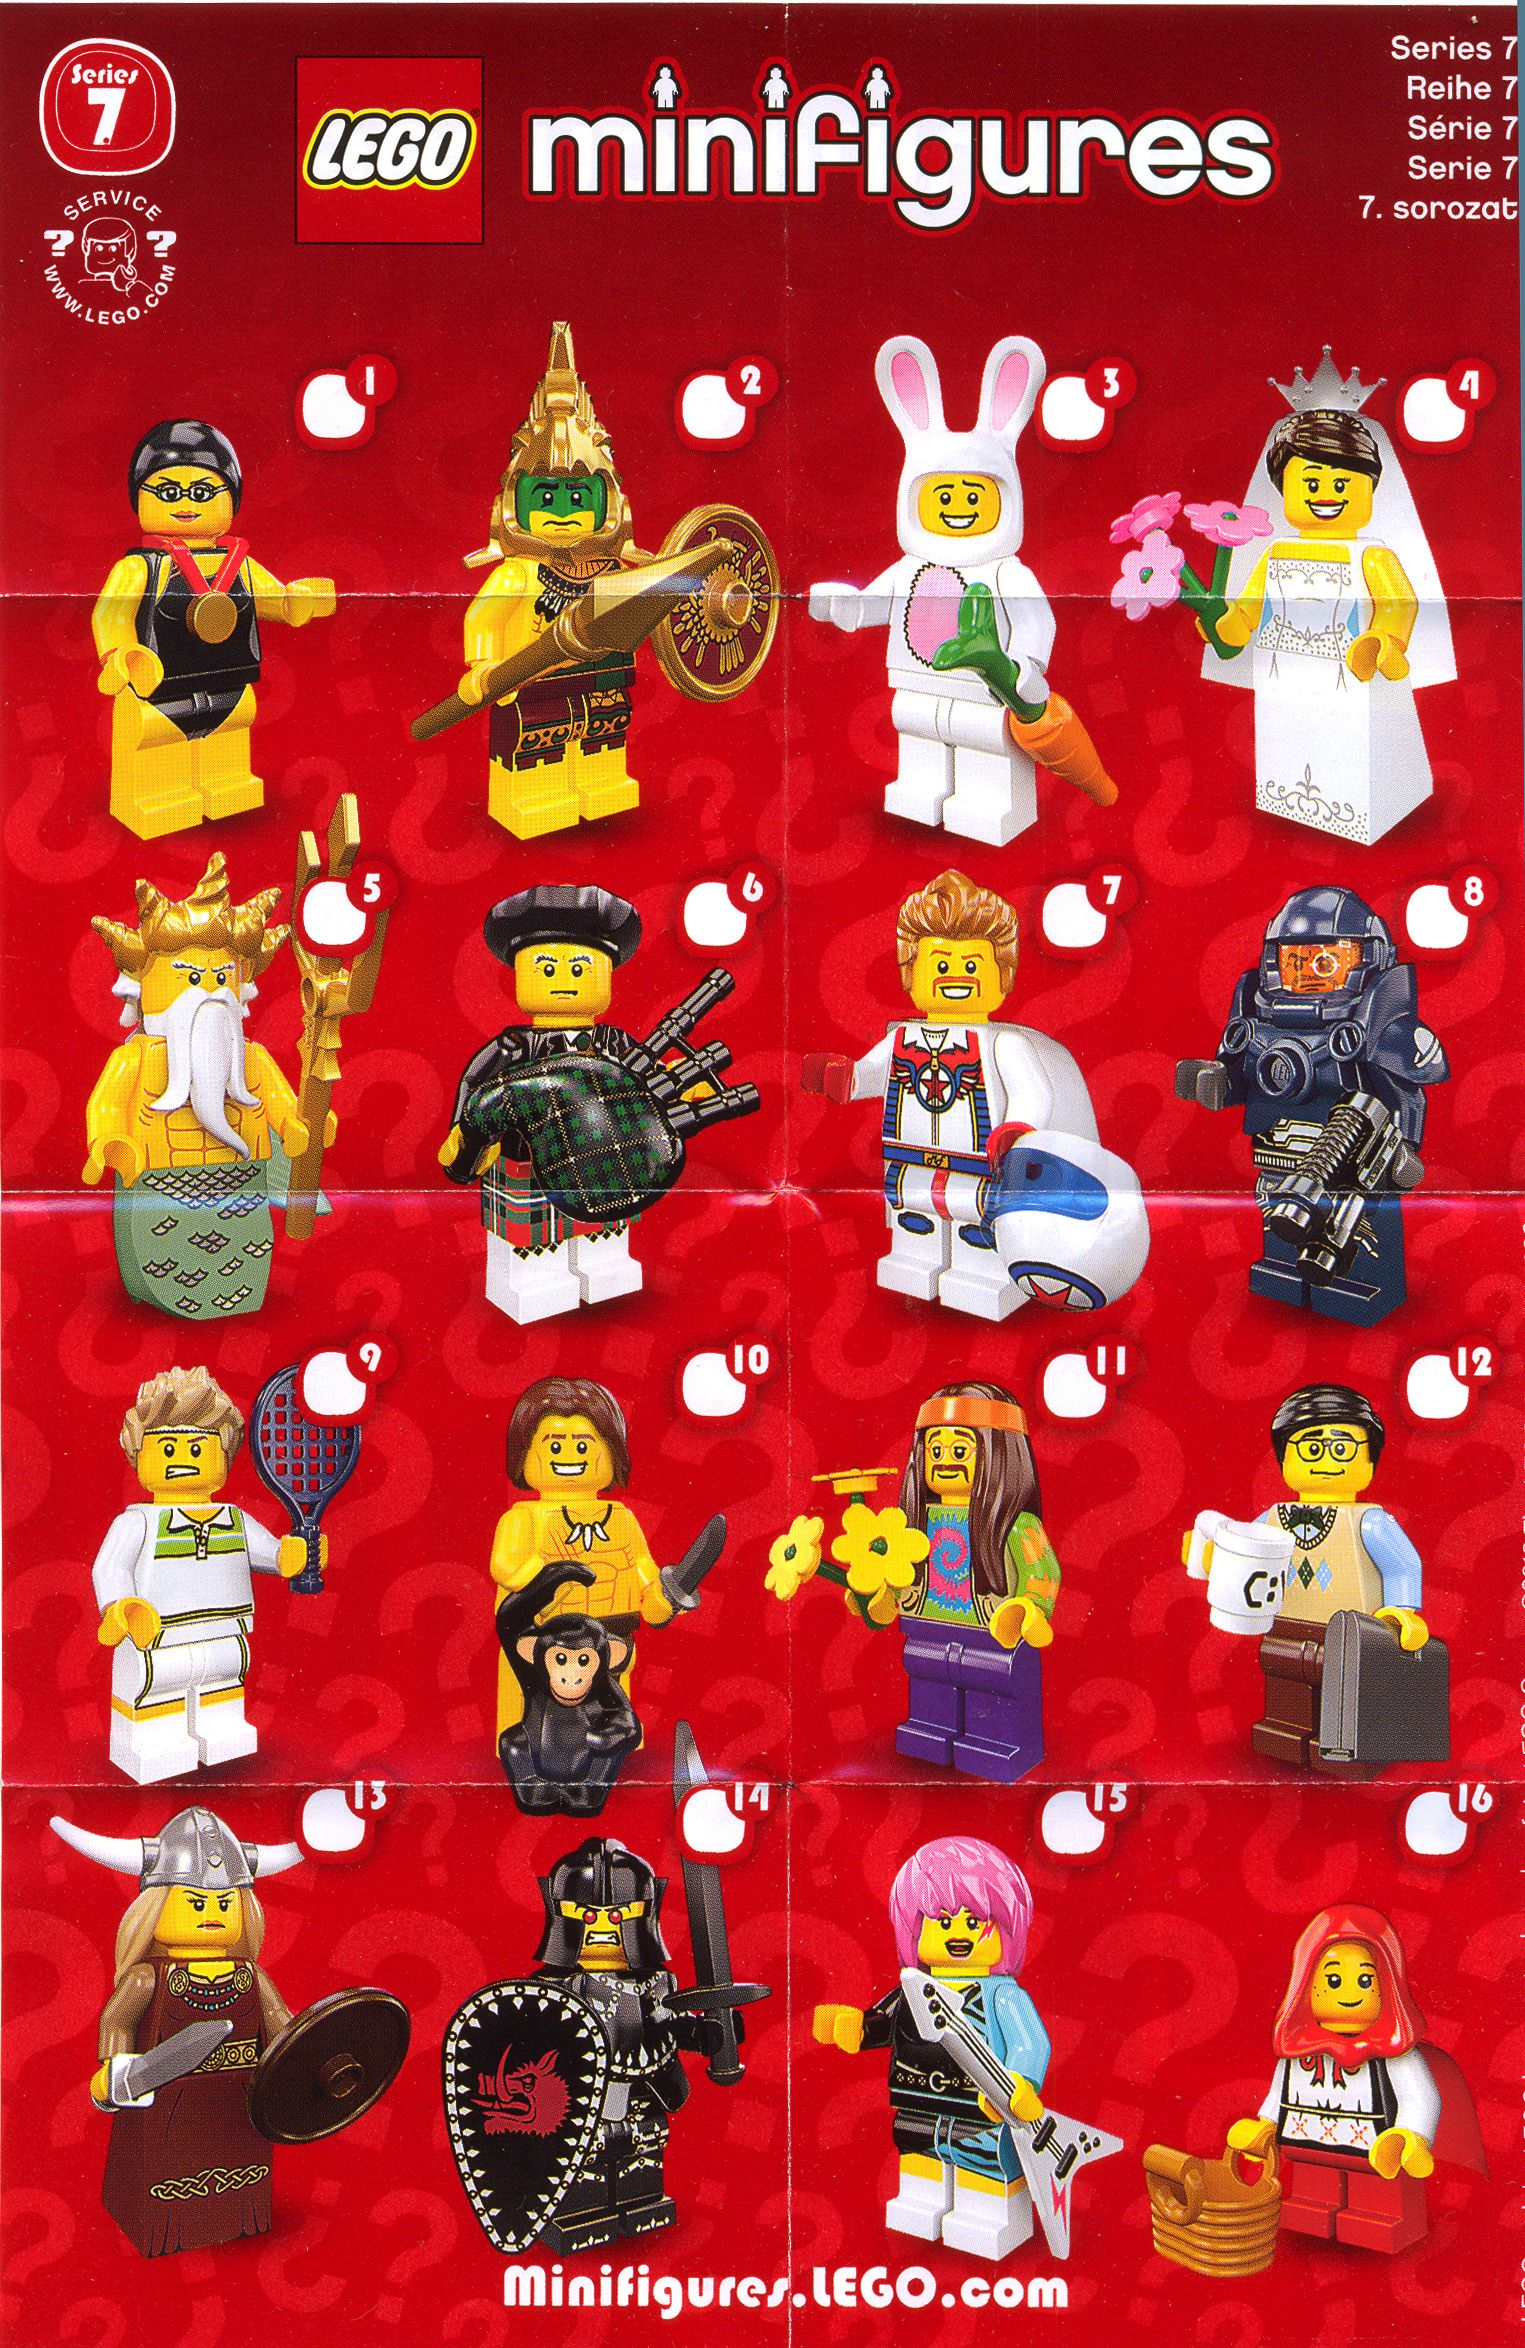 Lego Minifigures Series 7 Will Only Has The Computer Geek